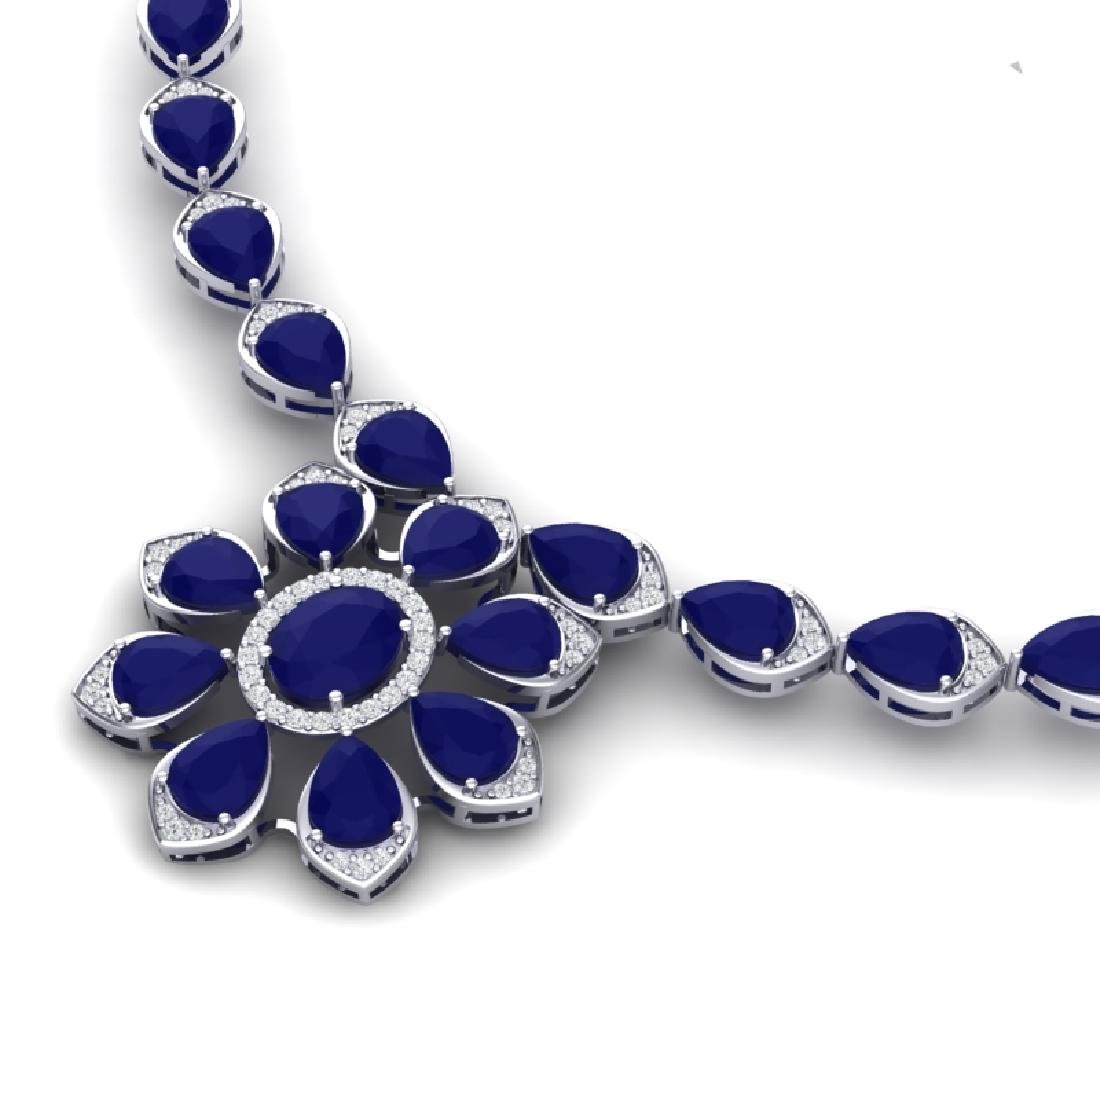 30.70 CTW Royalty Sapphire & VS Diamond Necklace 18K - 2